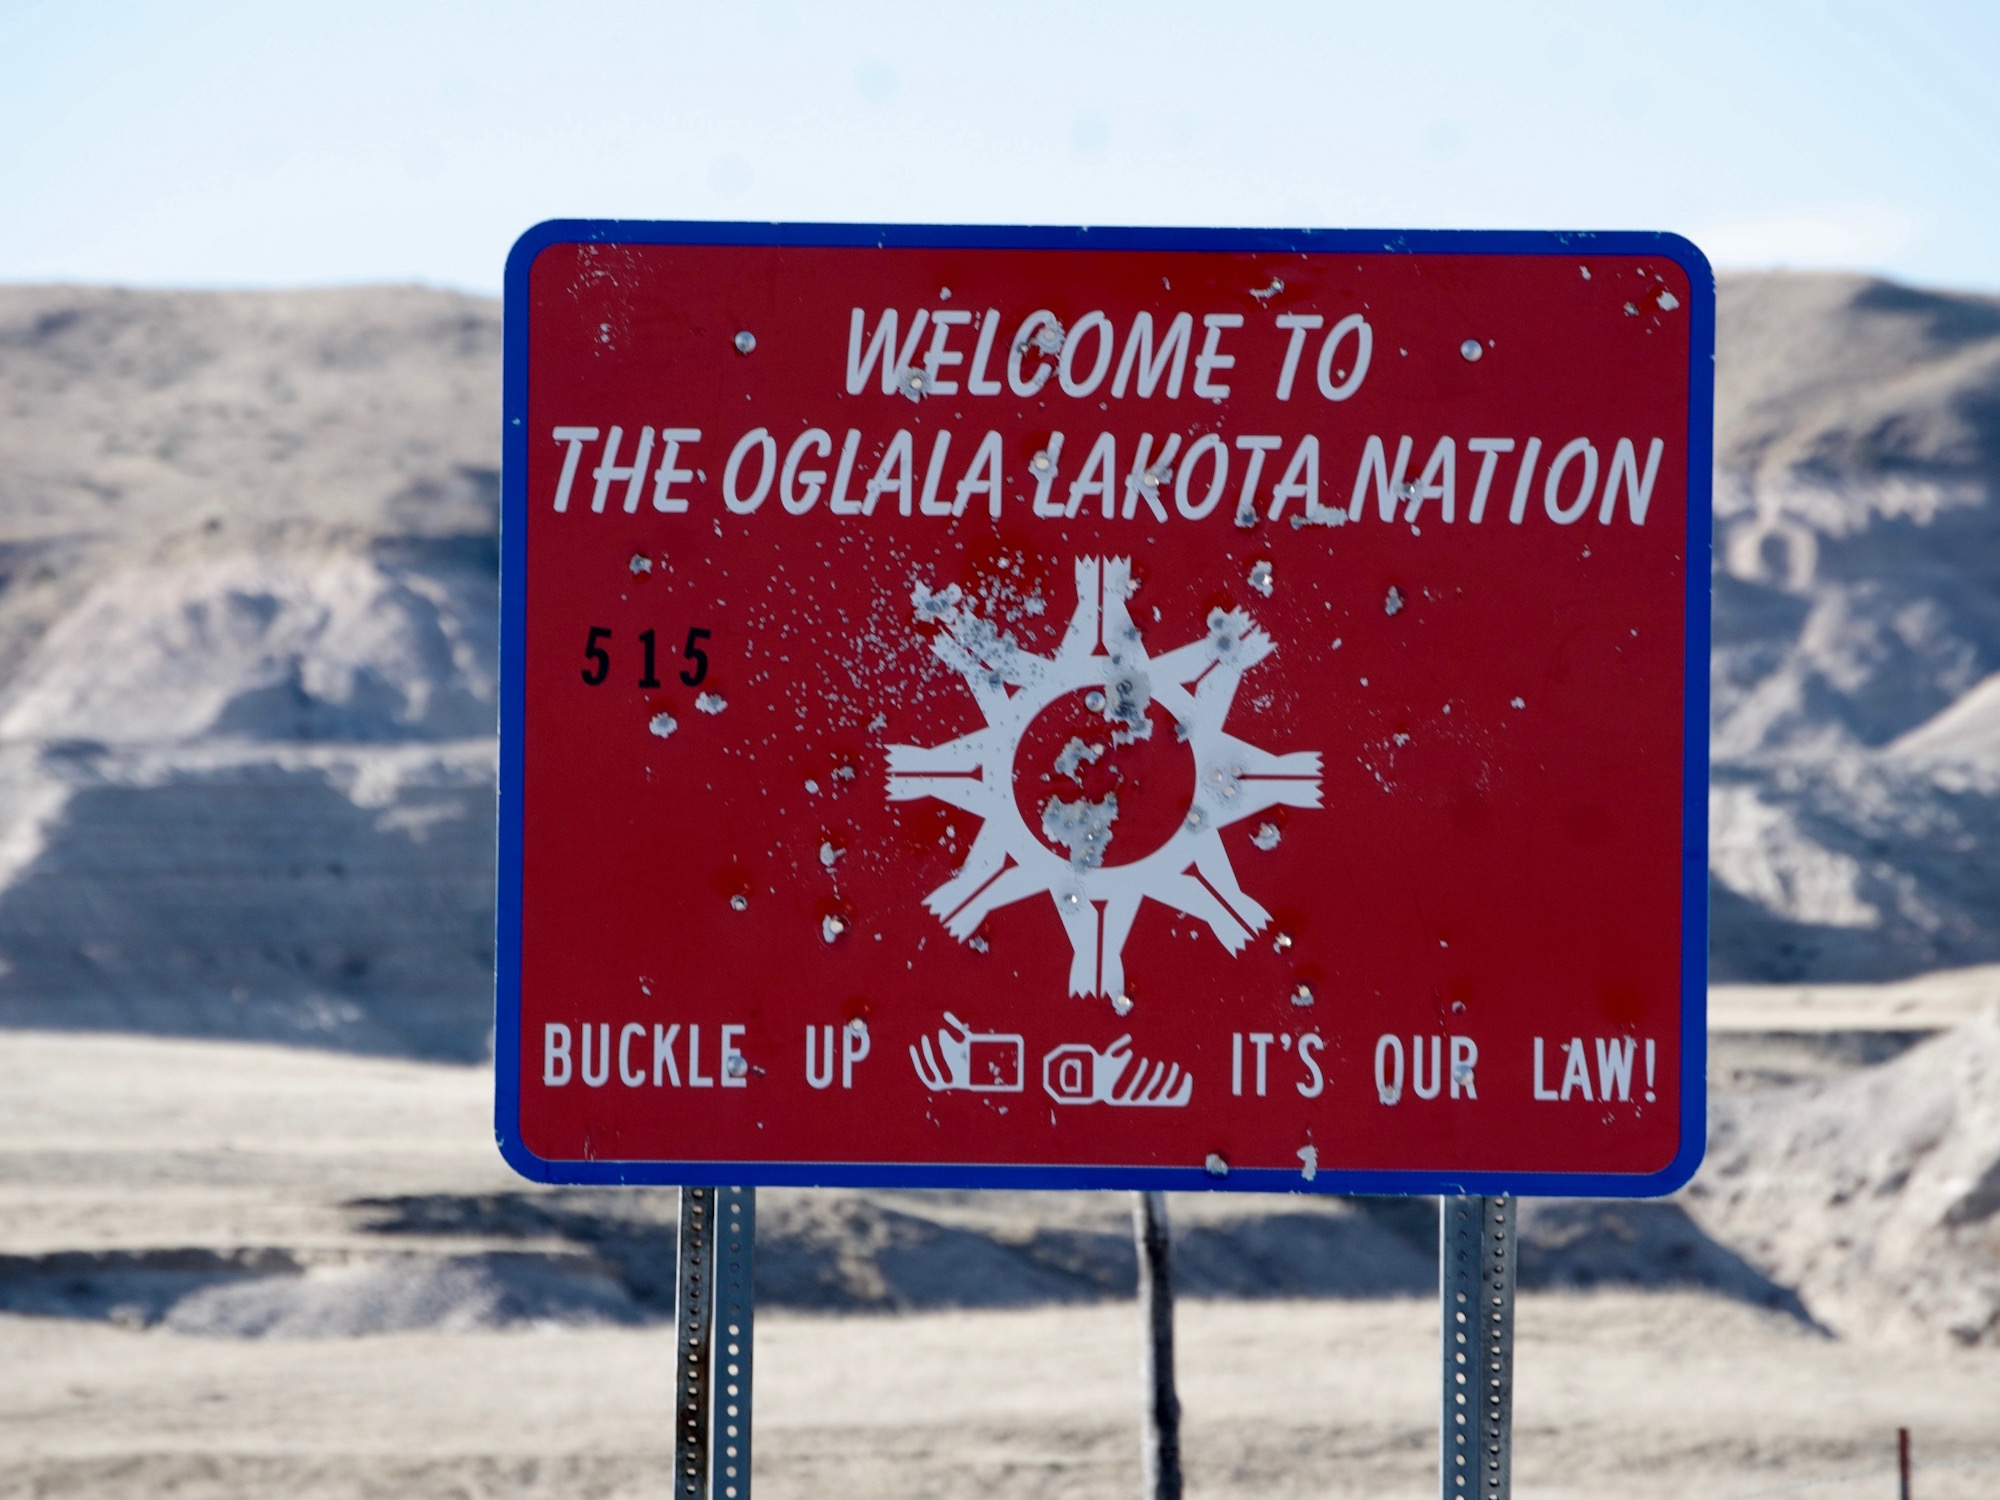 Jeffrey Whalen: It's time for new leadership in Oglala Sioux Tribe